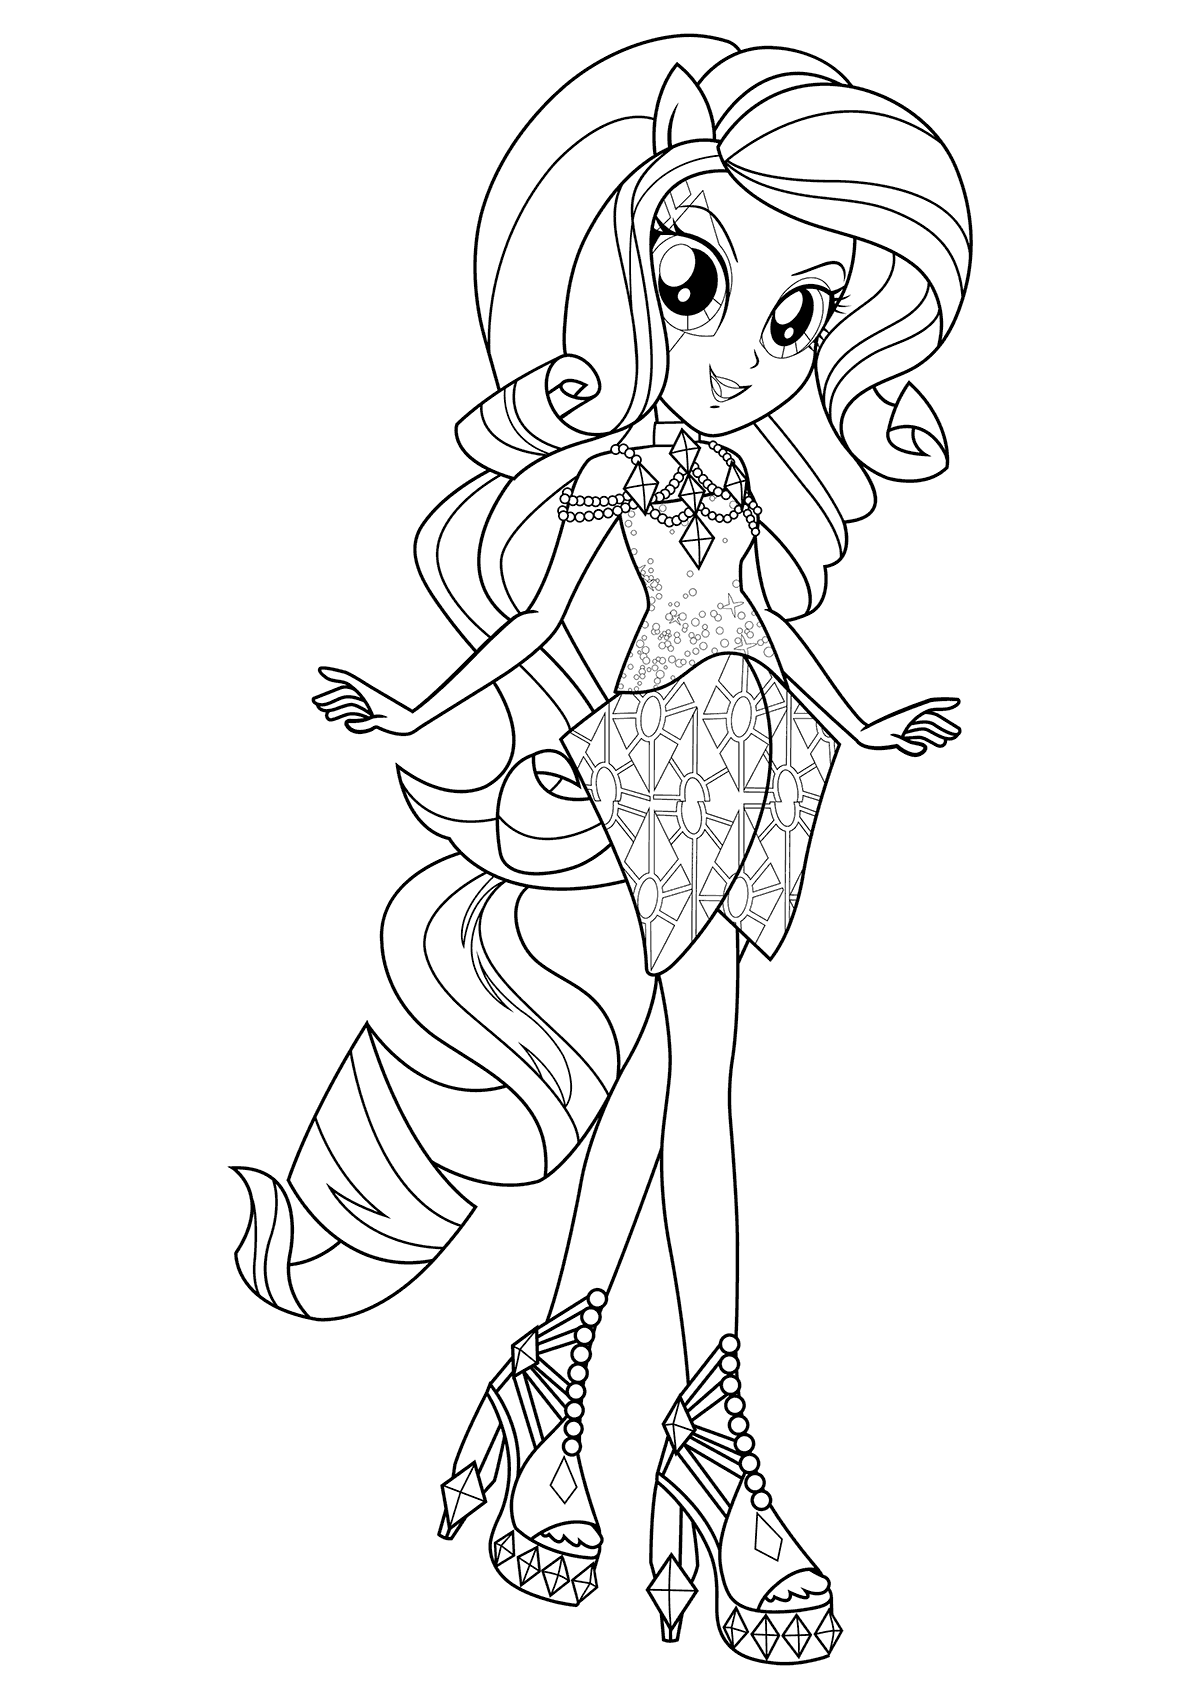 free coloring pages girls coloring pages powerpuff girls animated images gifs coloring free girls pages